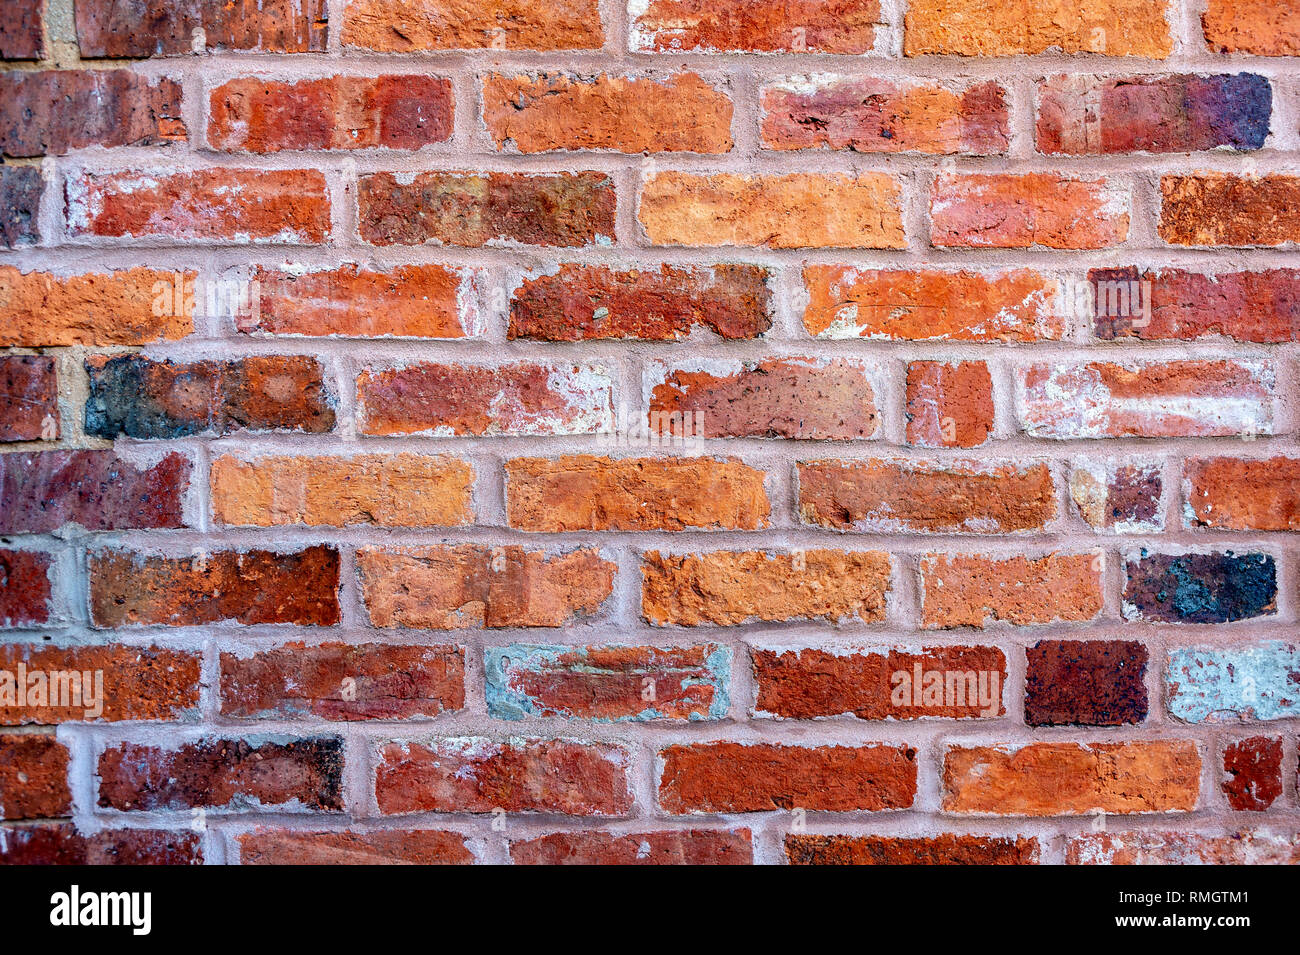 A brick wall built with old bricks - Stock Image